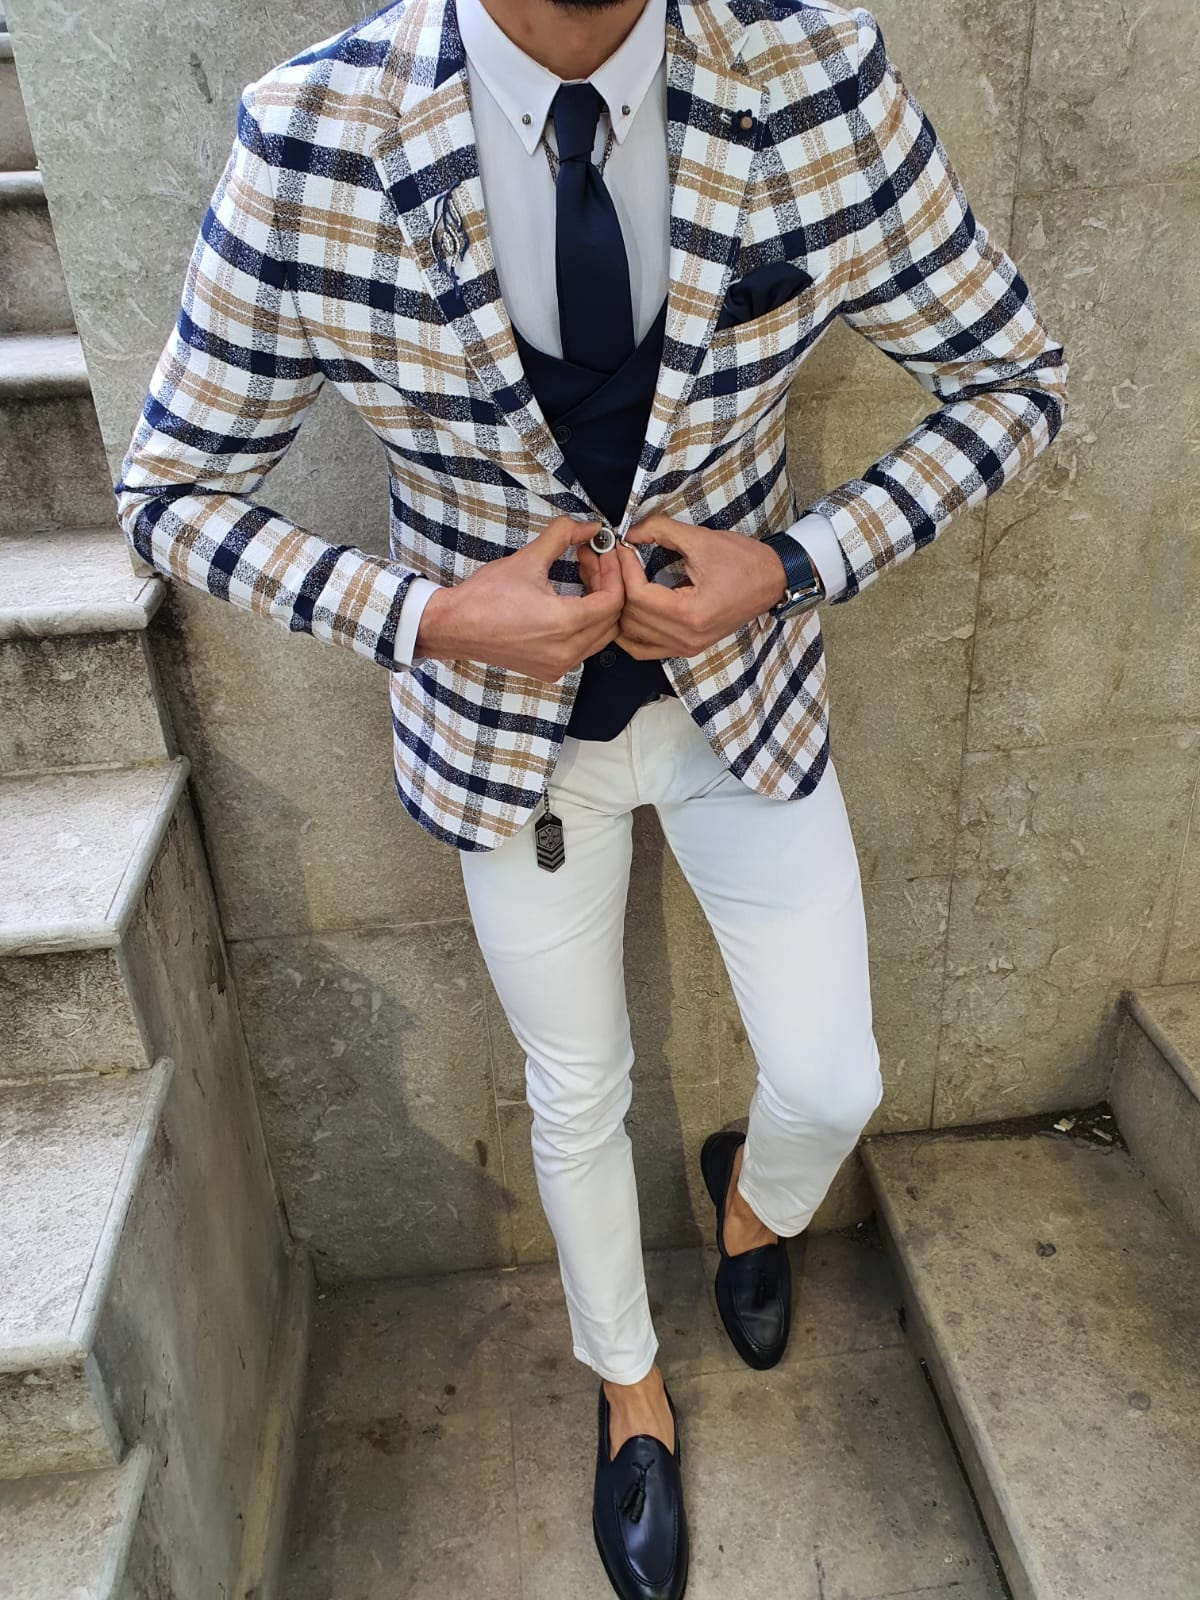 10 Dashing Grooms in Plaid & Tweed Jackets by GentWith Blog